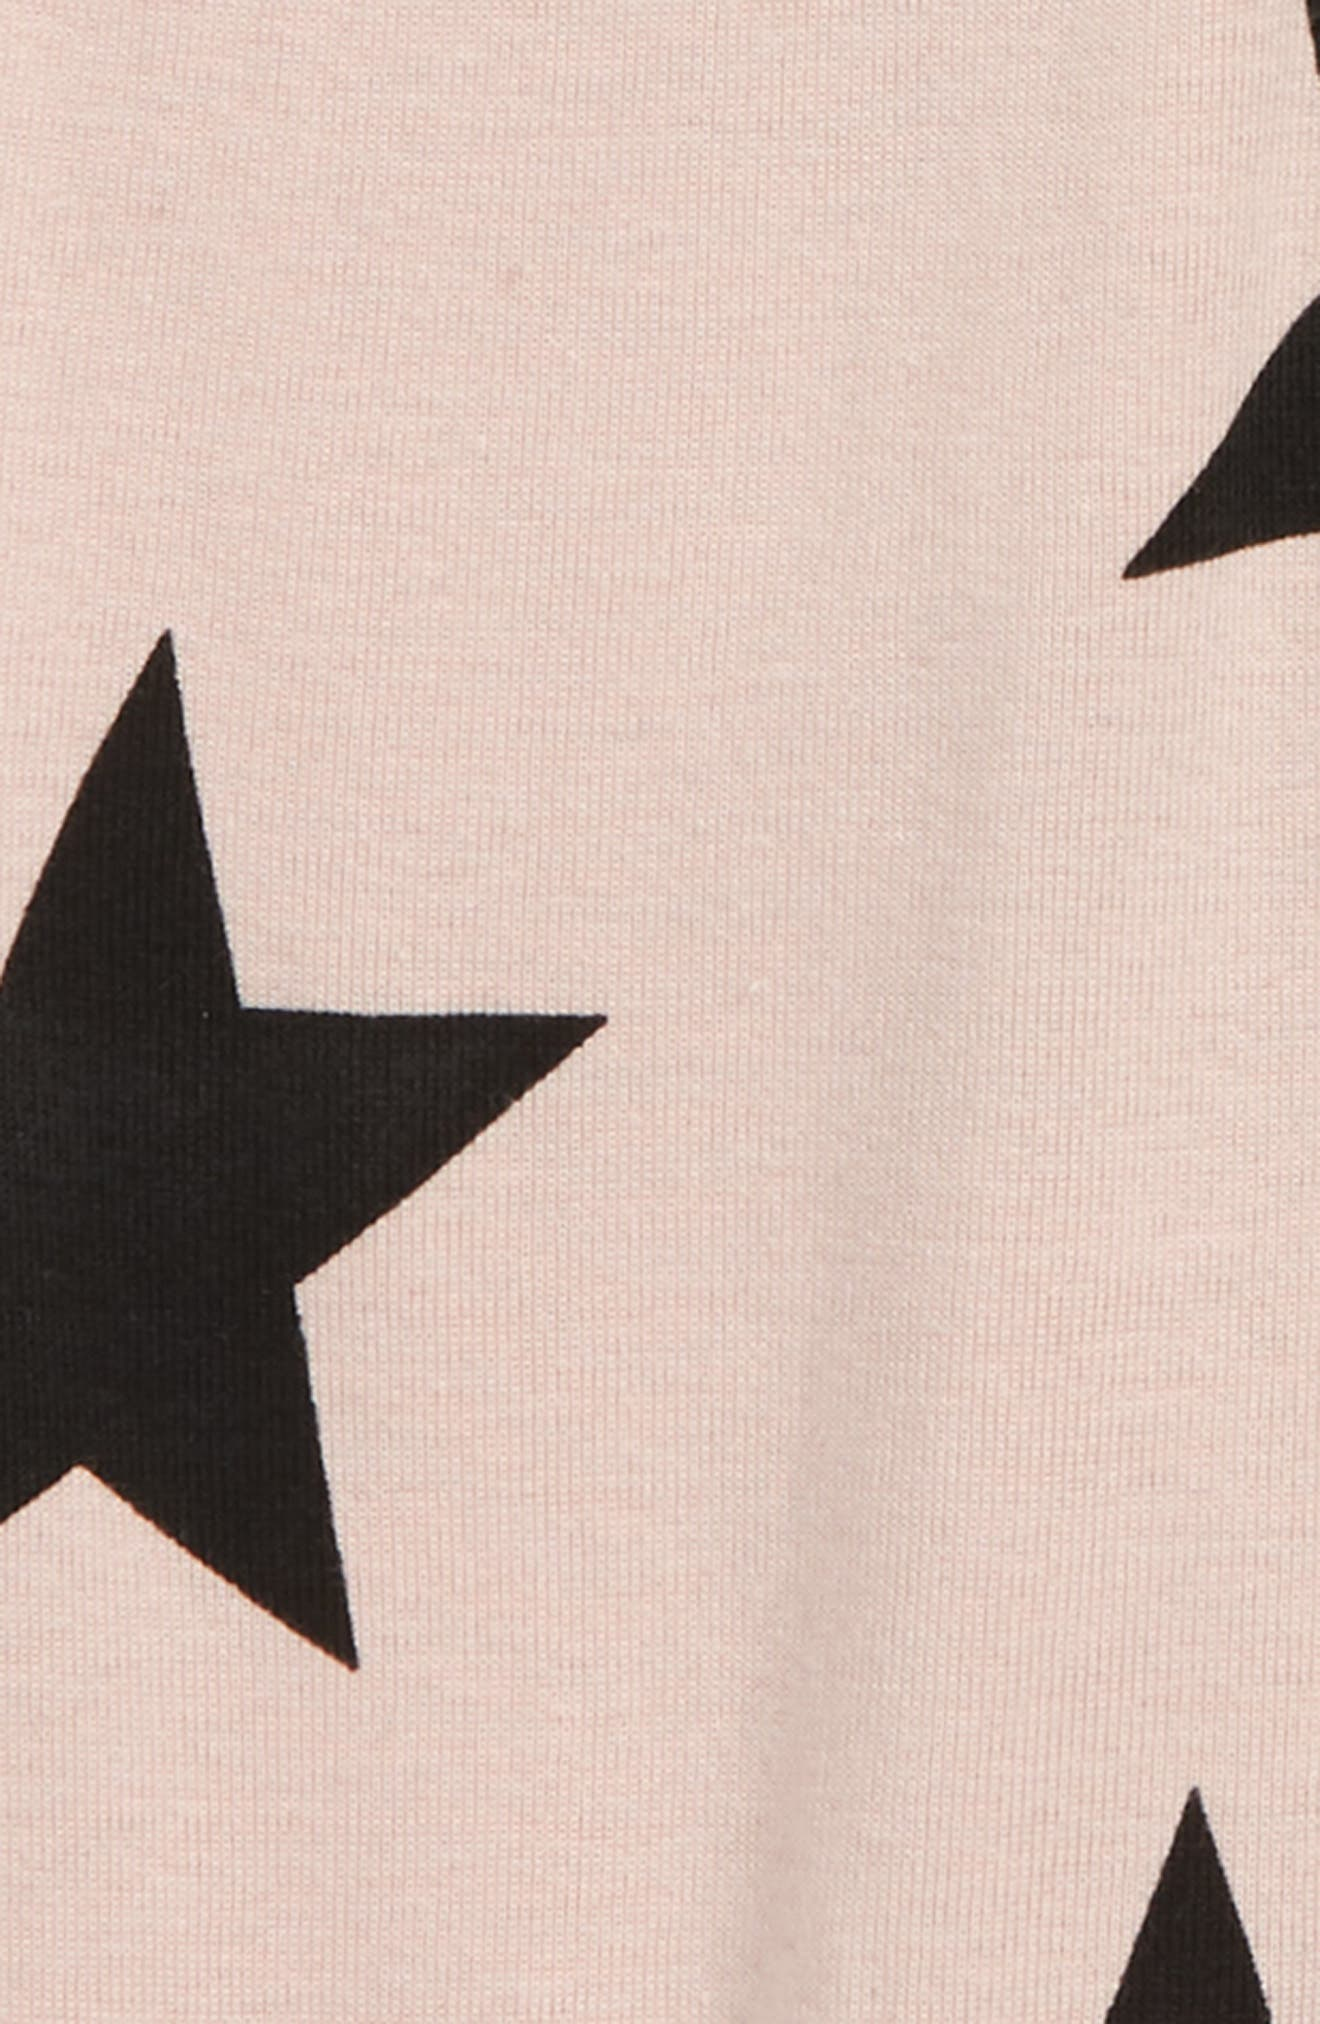 1/2 and 1/2 Star Romper,                             Alternate thumbnail 2, color,                             650